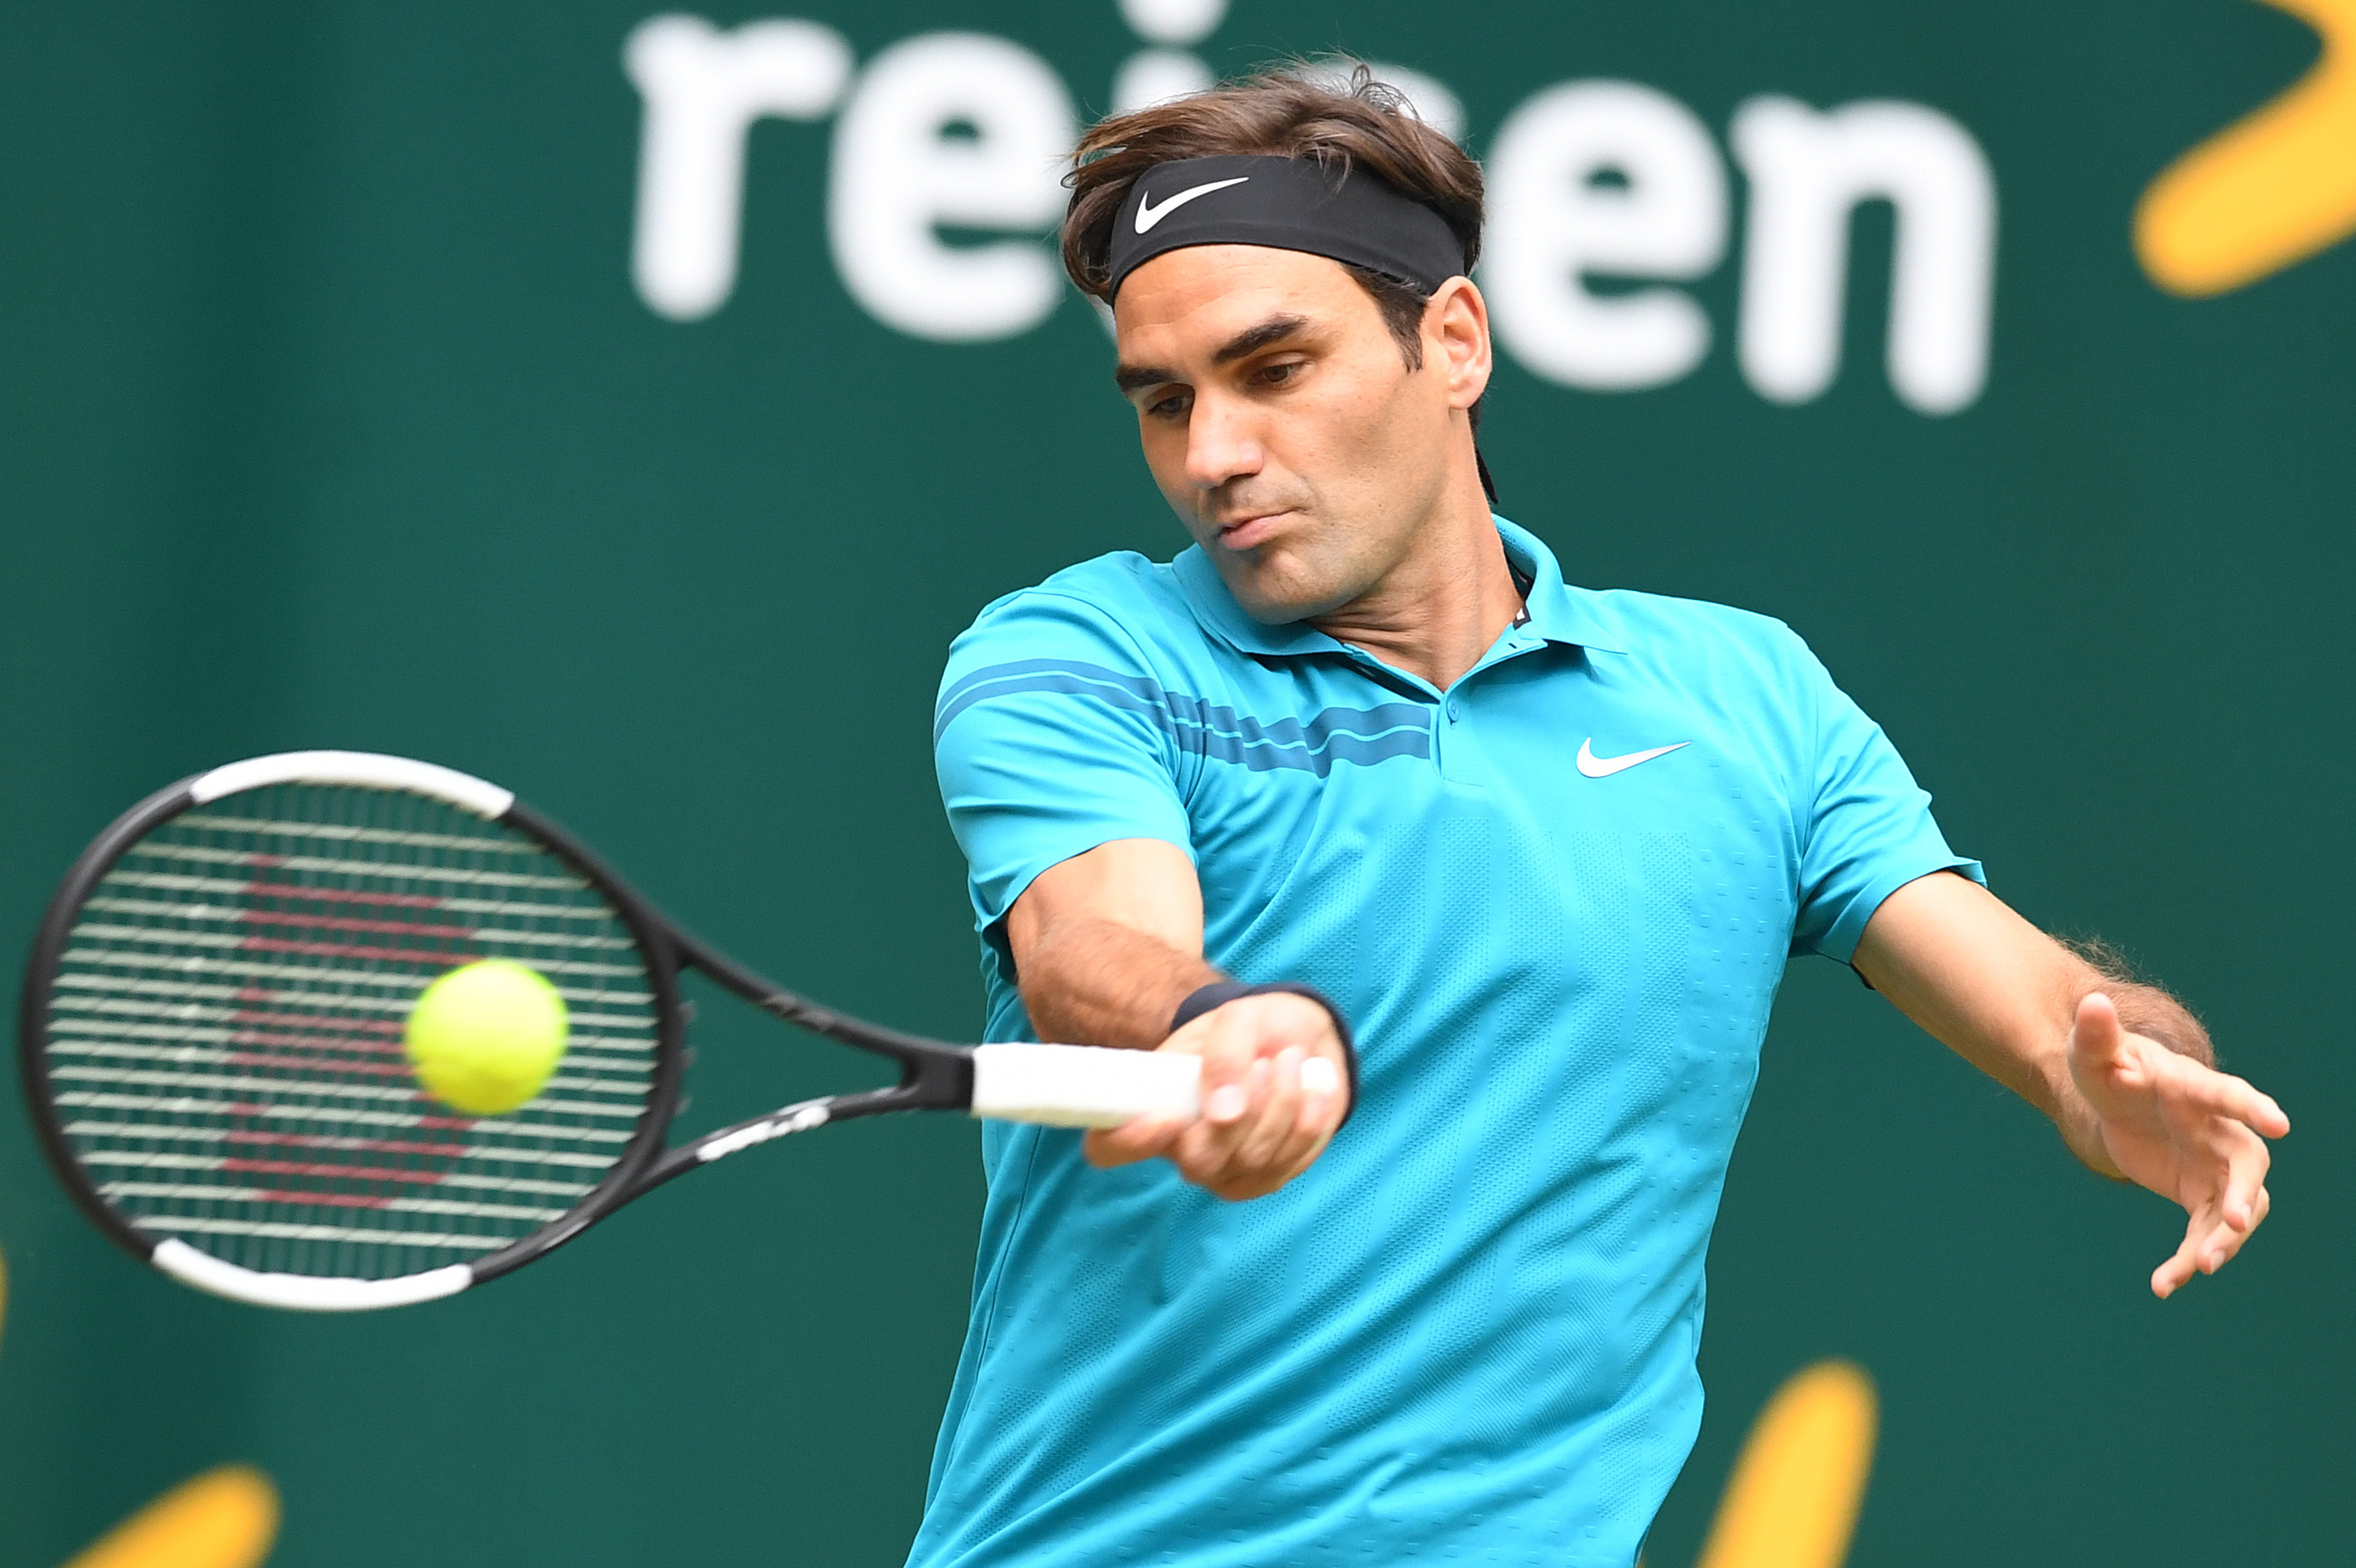 Murray federer oddschecker betting sports betting profits review of systems